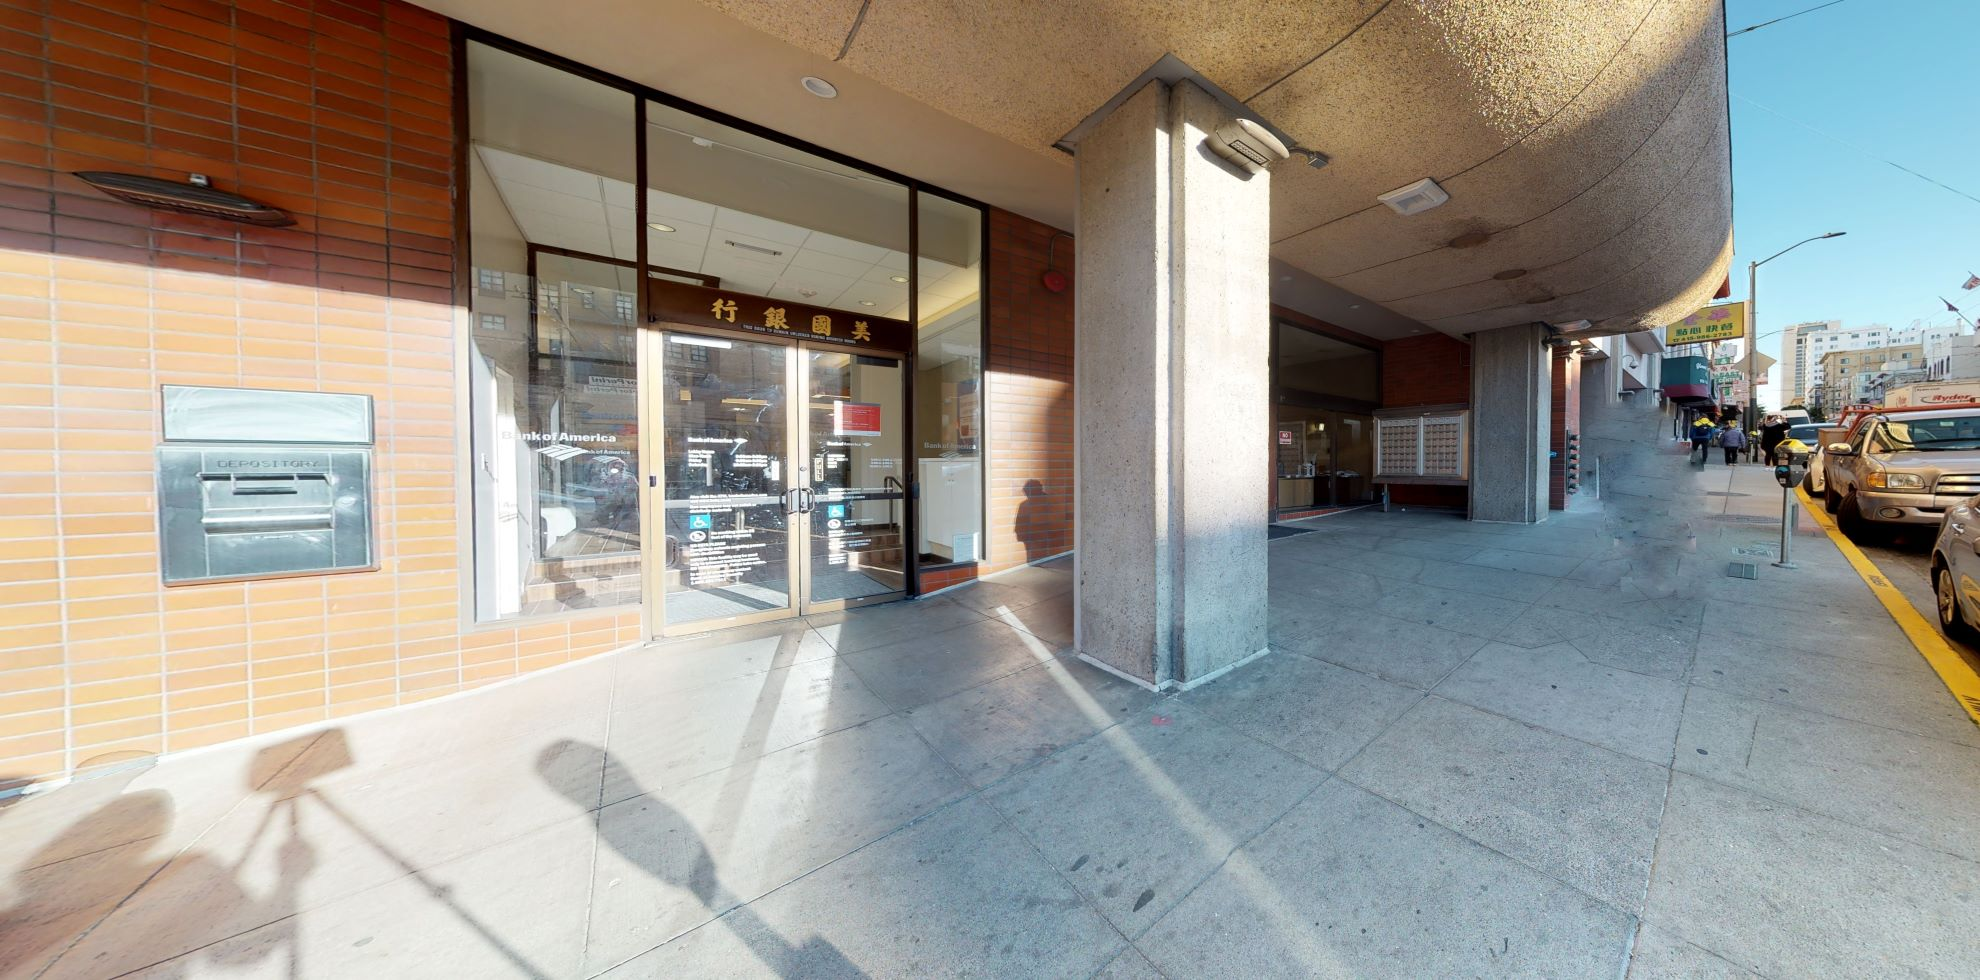 Bank of America financial center with walk-up ATM | 944 Stockton St, San Francisco, CA 94108